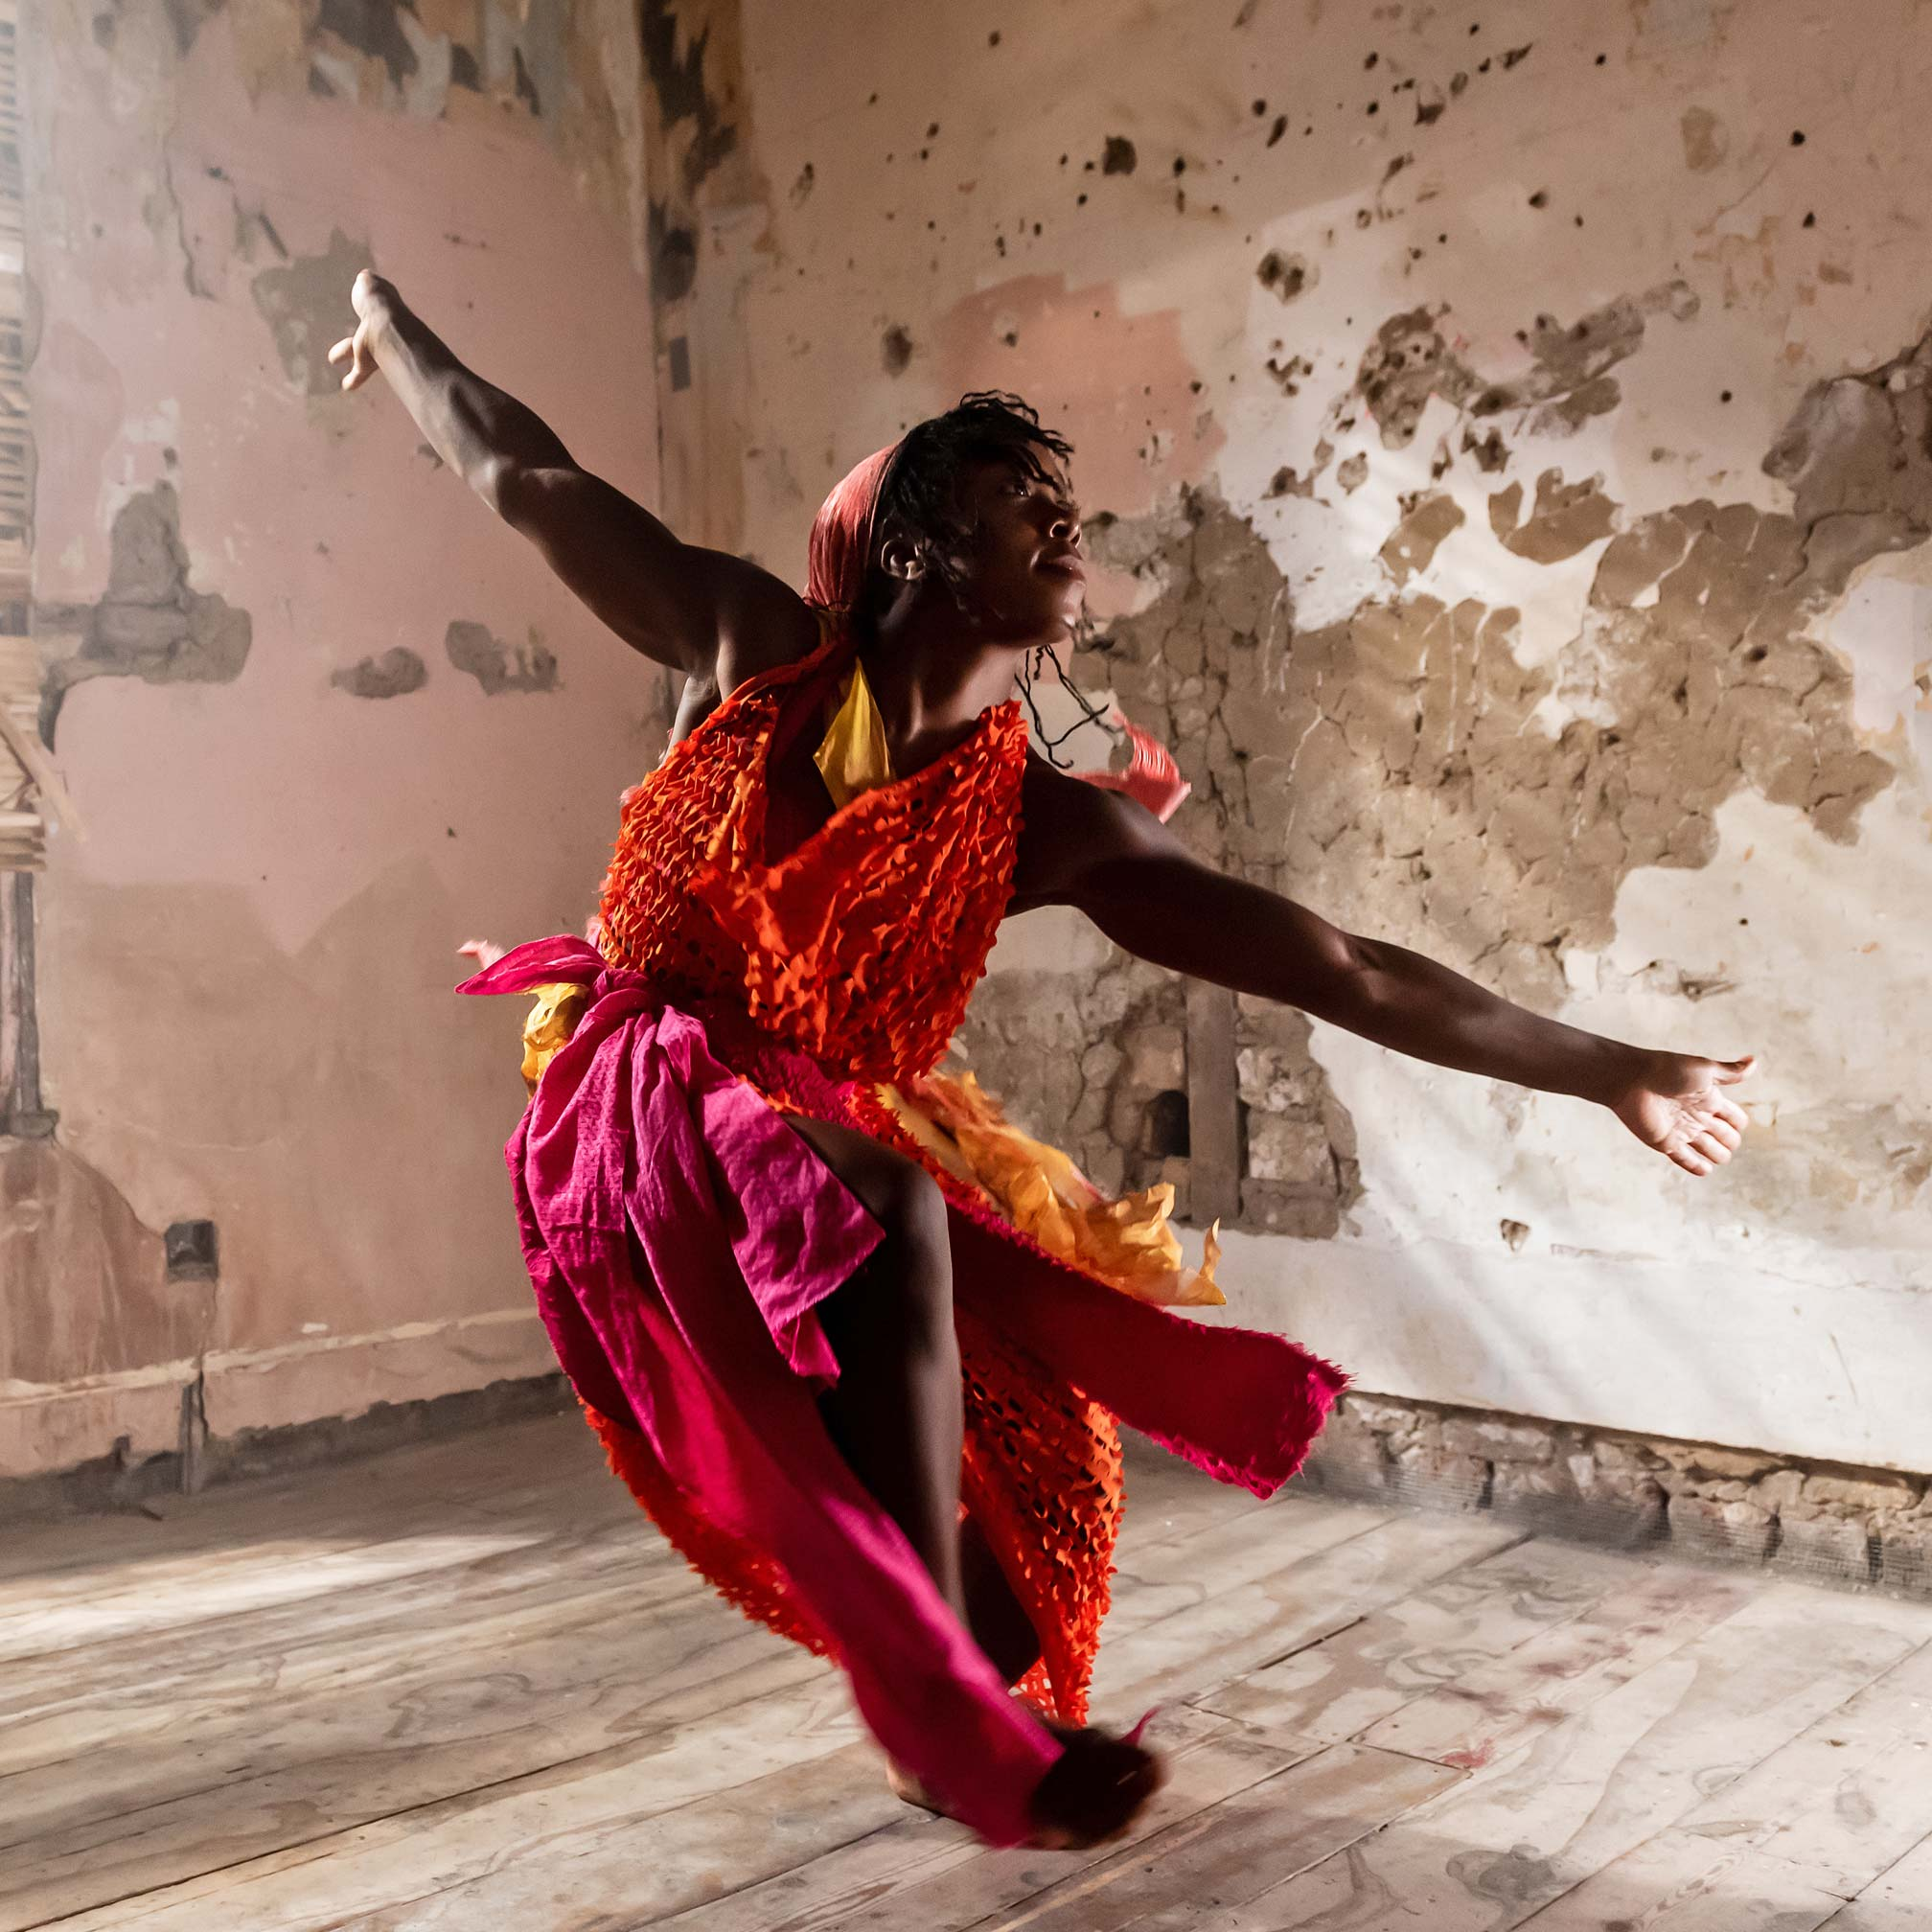 Asian dance artist in an empty building wearing pink and red